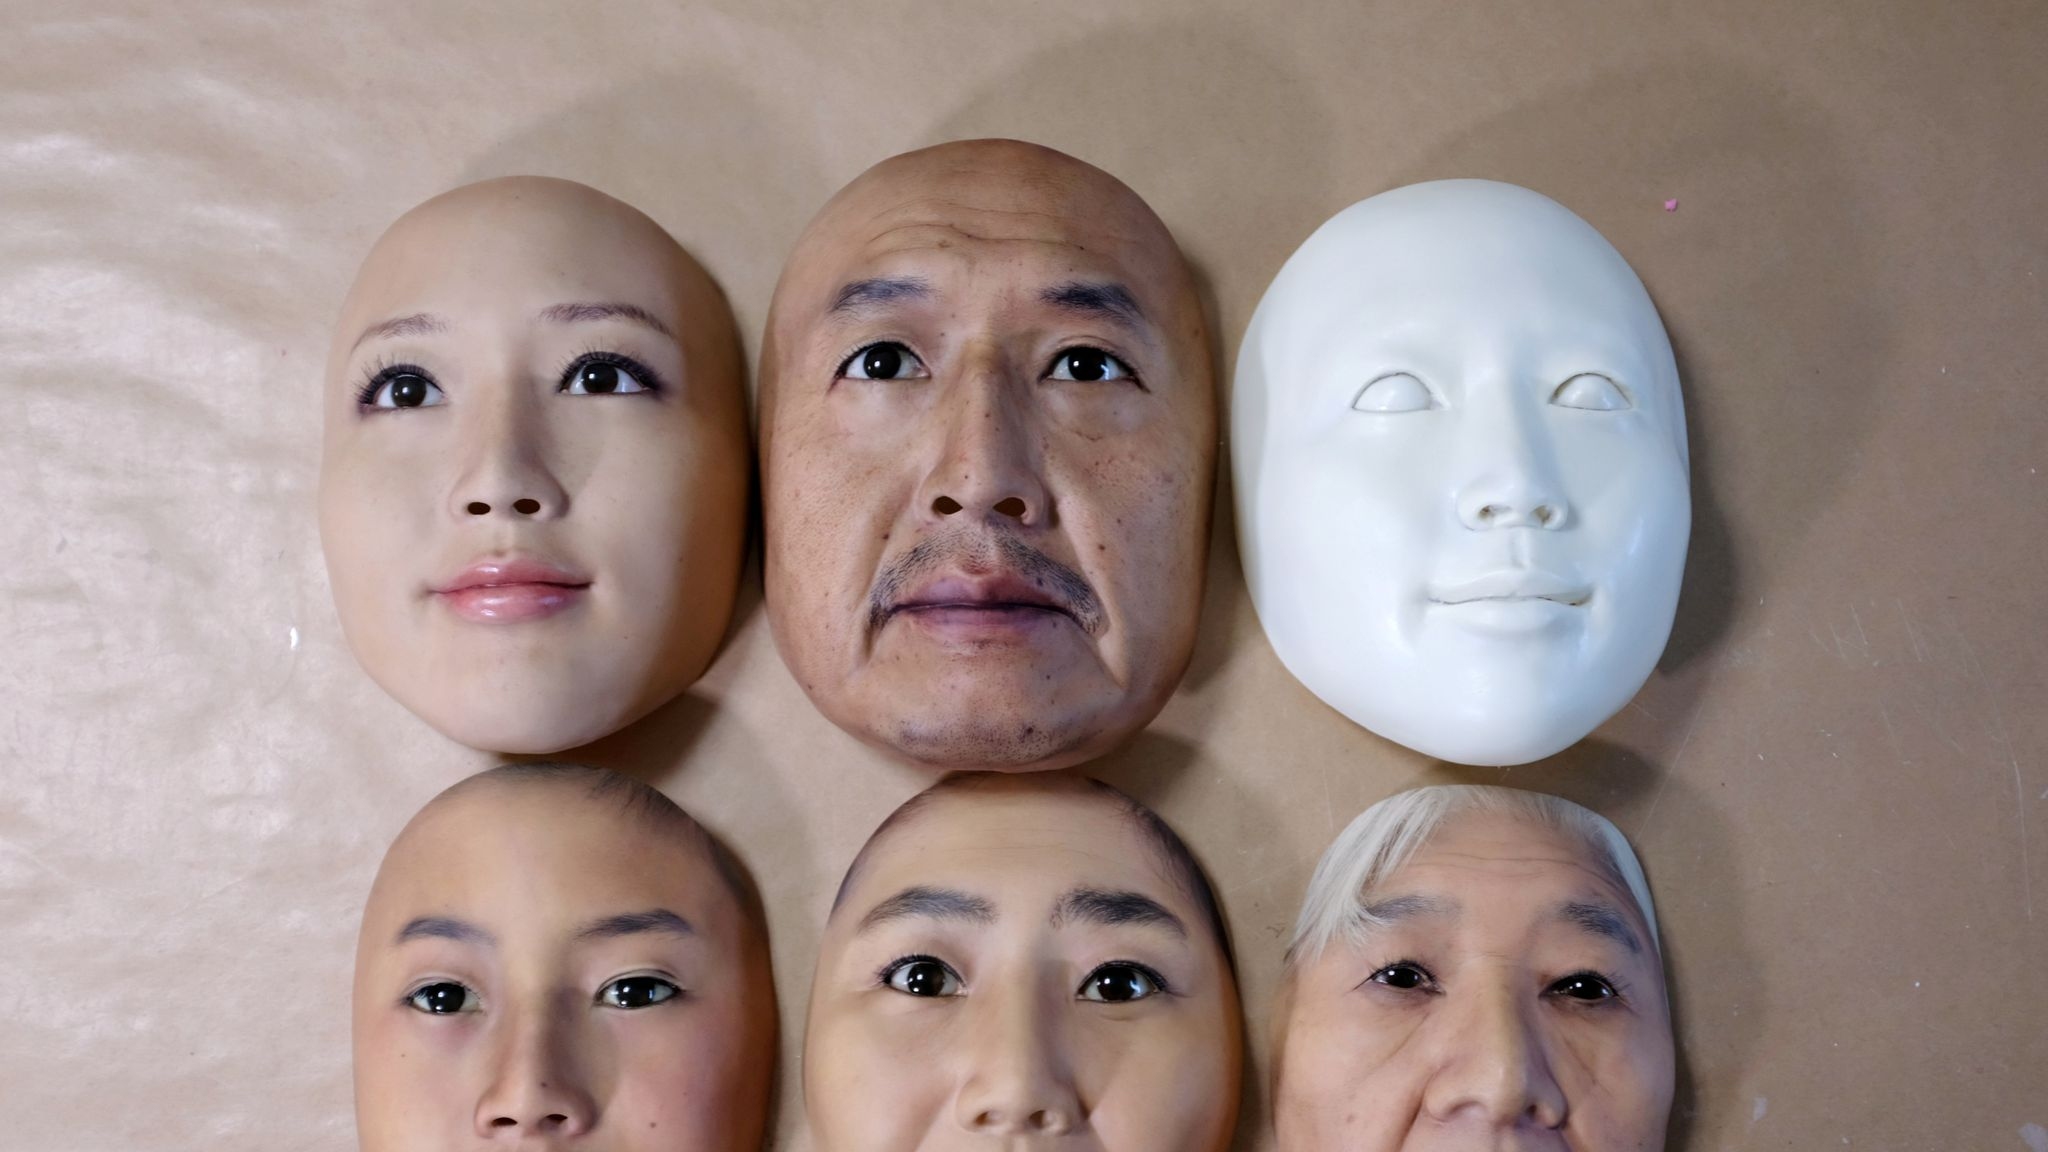 'Hyper-realistic' masks fool a fifth of people, say researchers